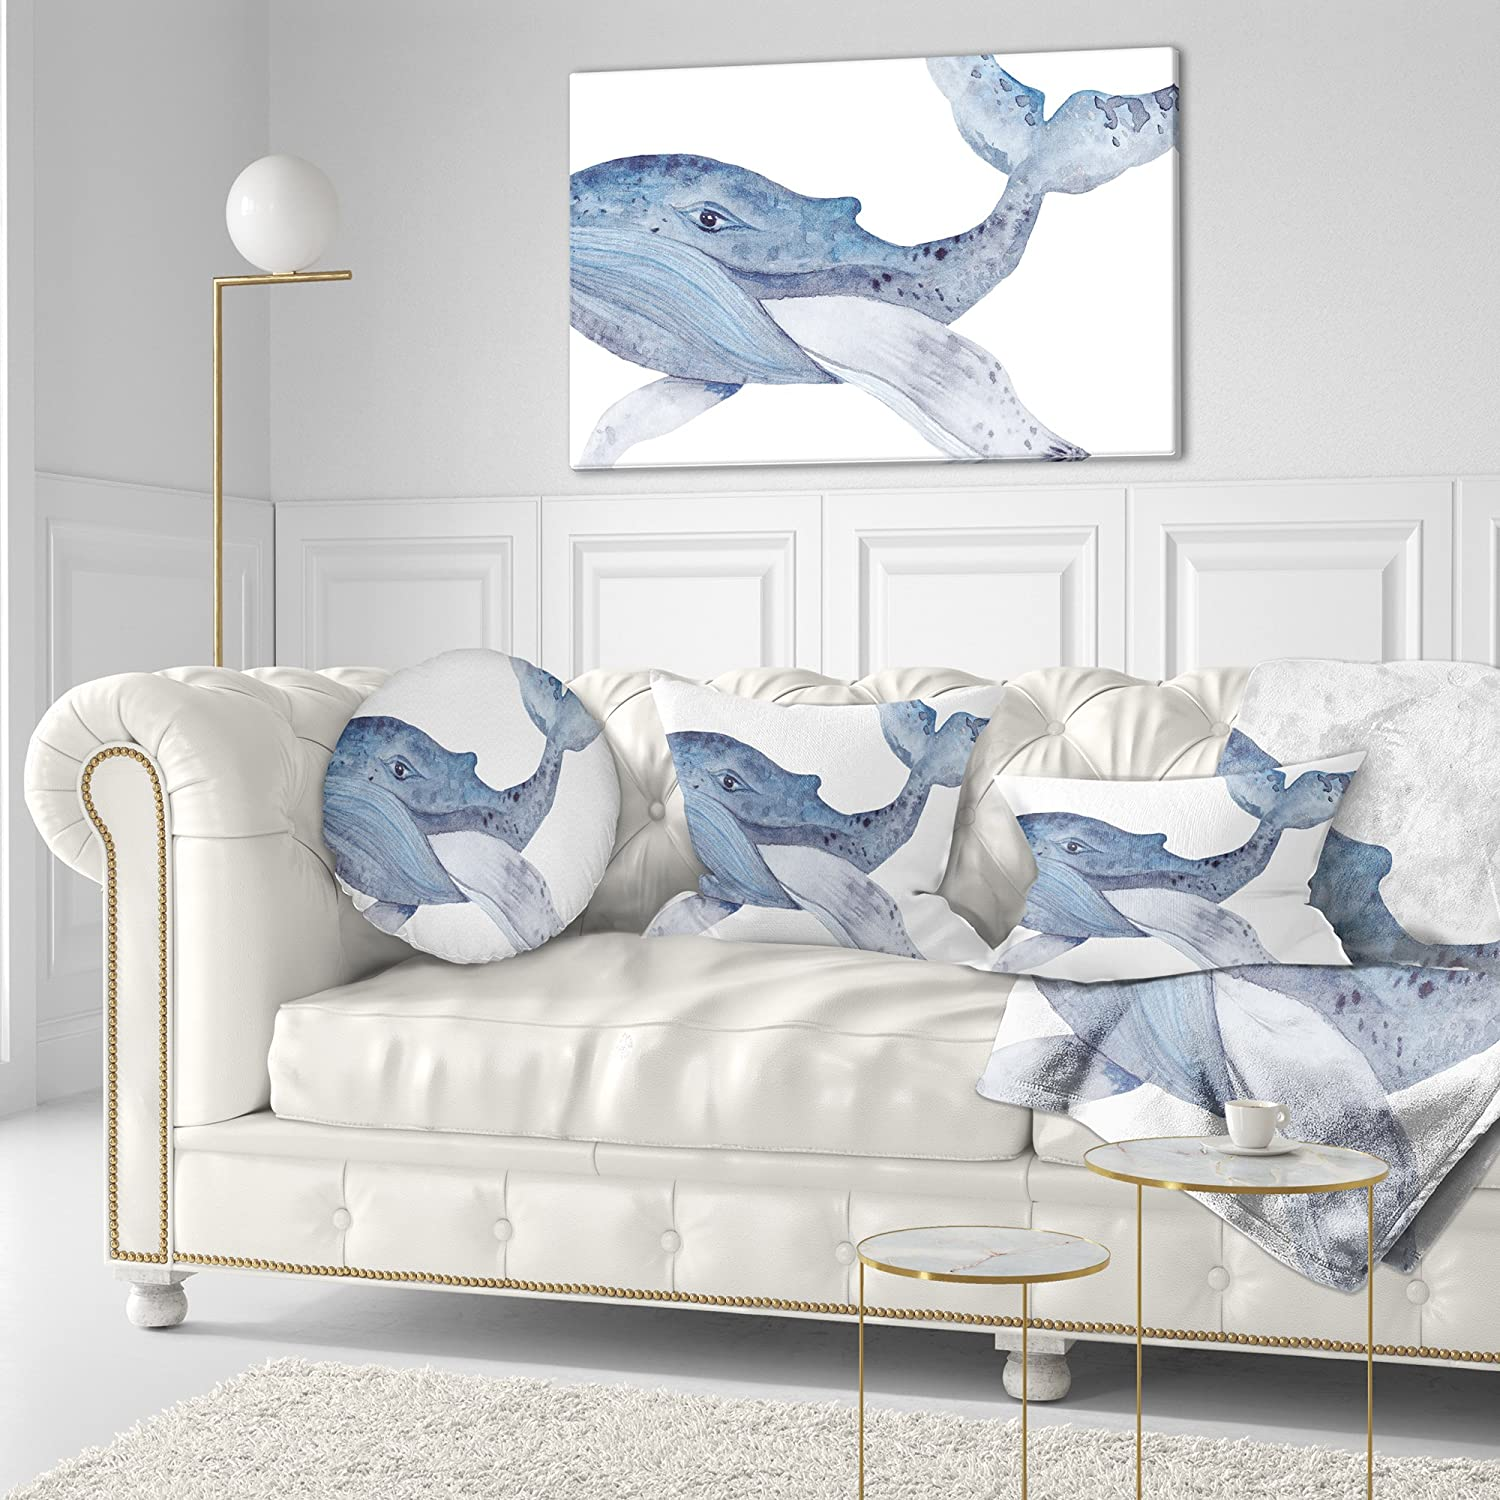 Super Decorative Pillows Designart Cu7671 20 20 C Large Watercolor Gmtry Best Dining Table And Chair Ideas Images Gmtryco